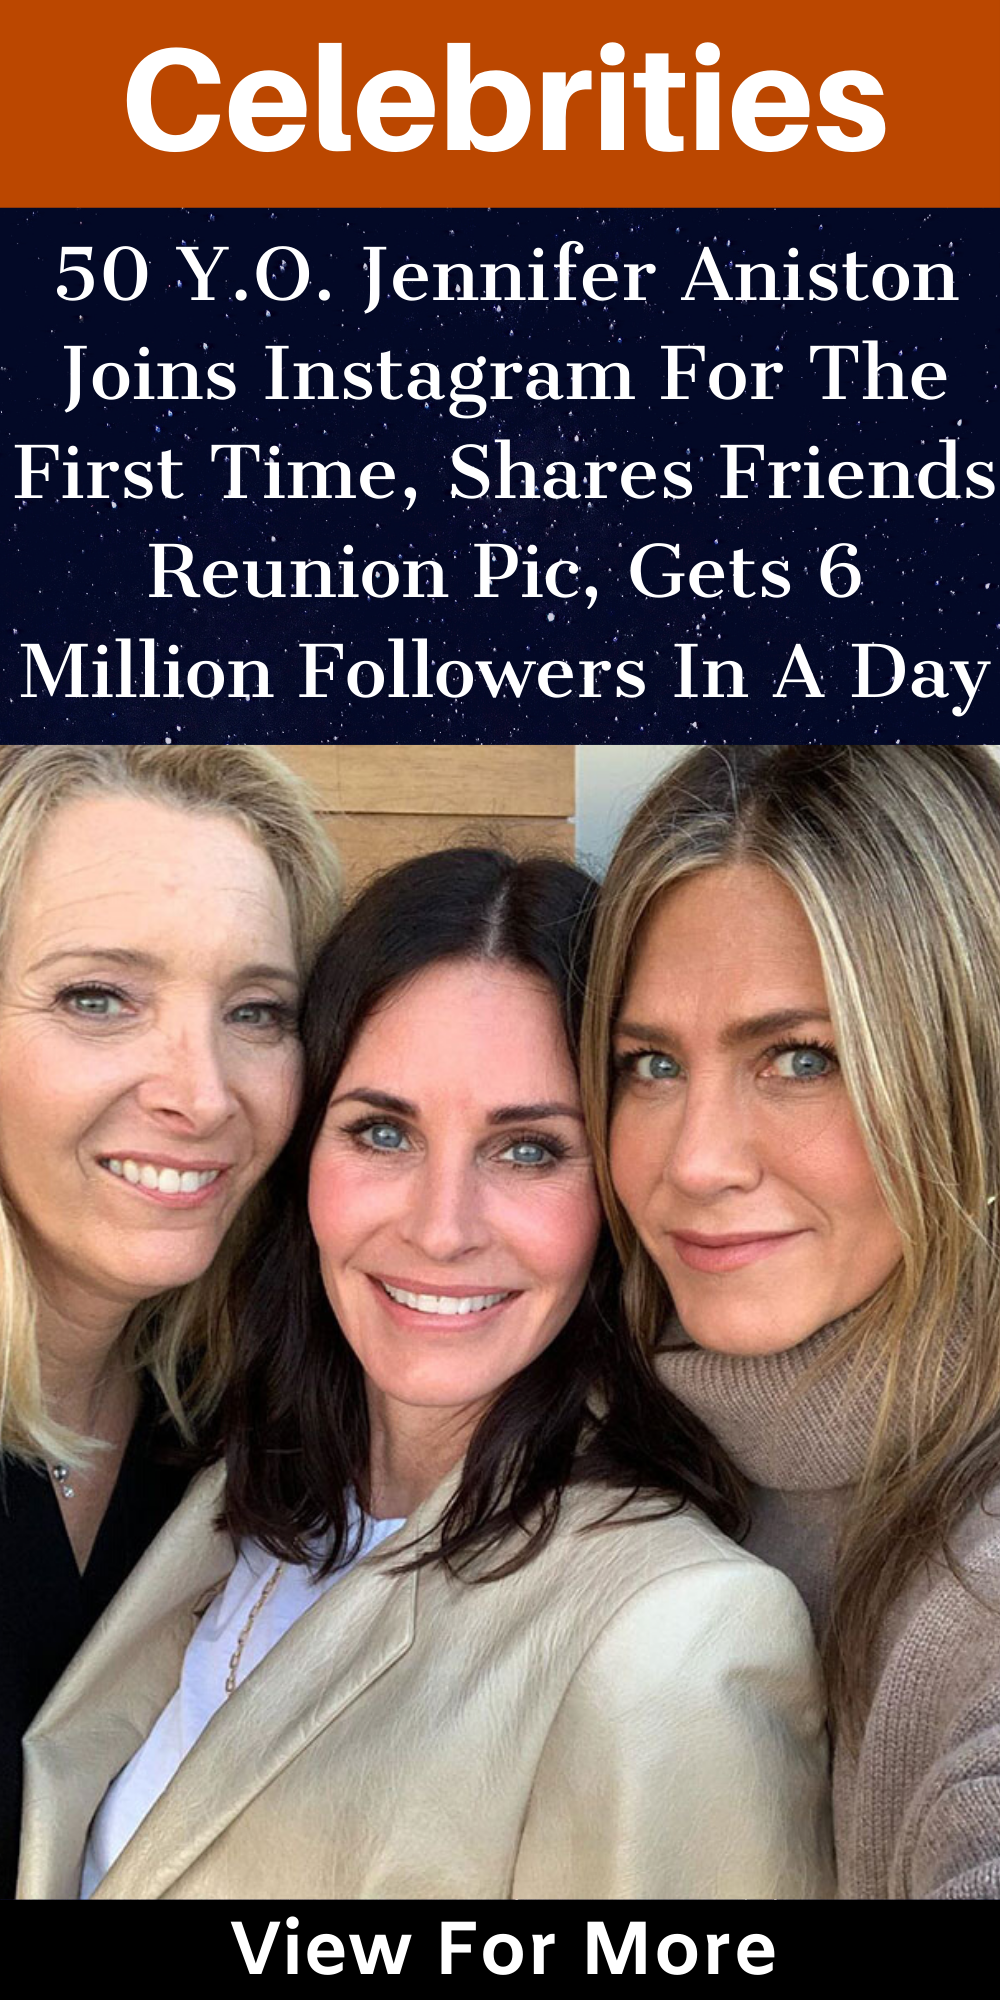 50 y o jennifer aniston joins instagram for the first time shares friends reunion pic gets 6 million followers in a day bored panda 50 Y O Jennifer Aniston Joins Instagram For The First Time Shares Friends Reunion Pic Gets 6 Million Follow Jennifer Aniston Jennifer Aniston Friends Join Instagram